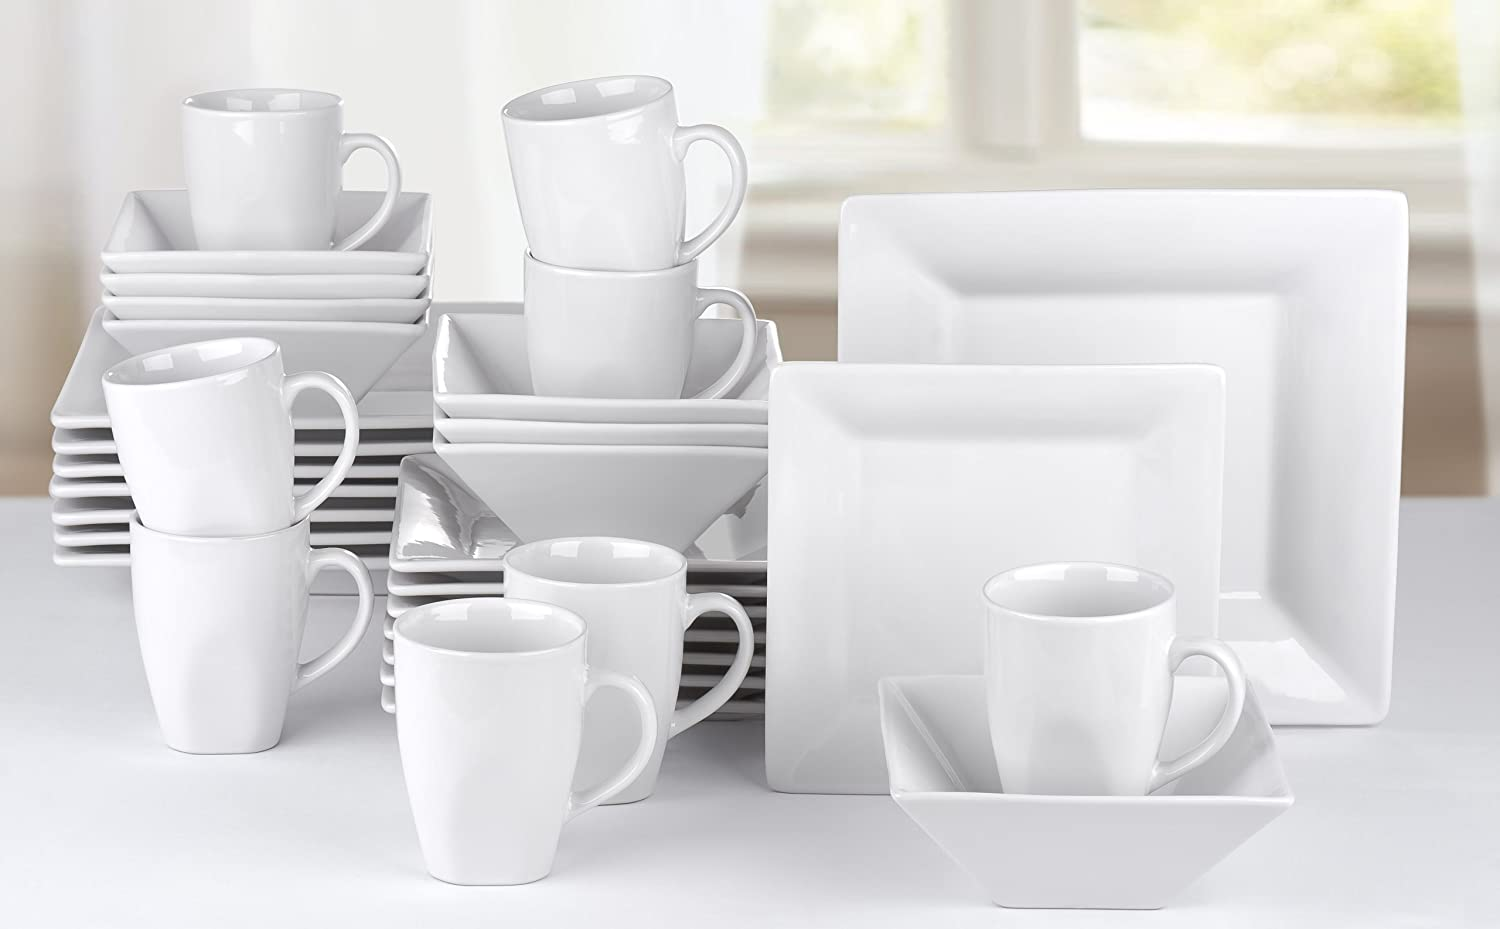 32 Piece Manhattan White Square Stoneware Dinner Set Amazon.co.uk Kitchen u0026 Home : dining plate sets uk - pezcame.com